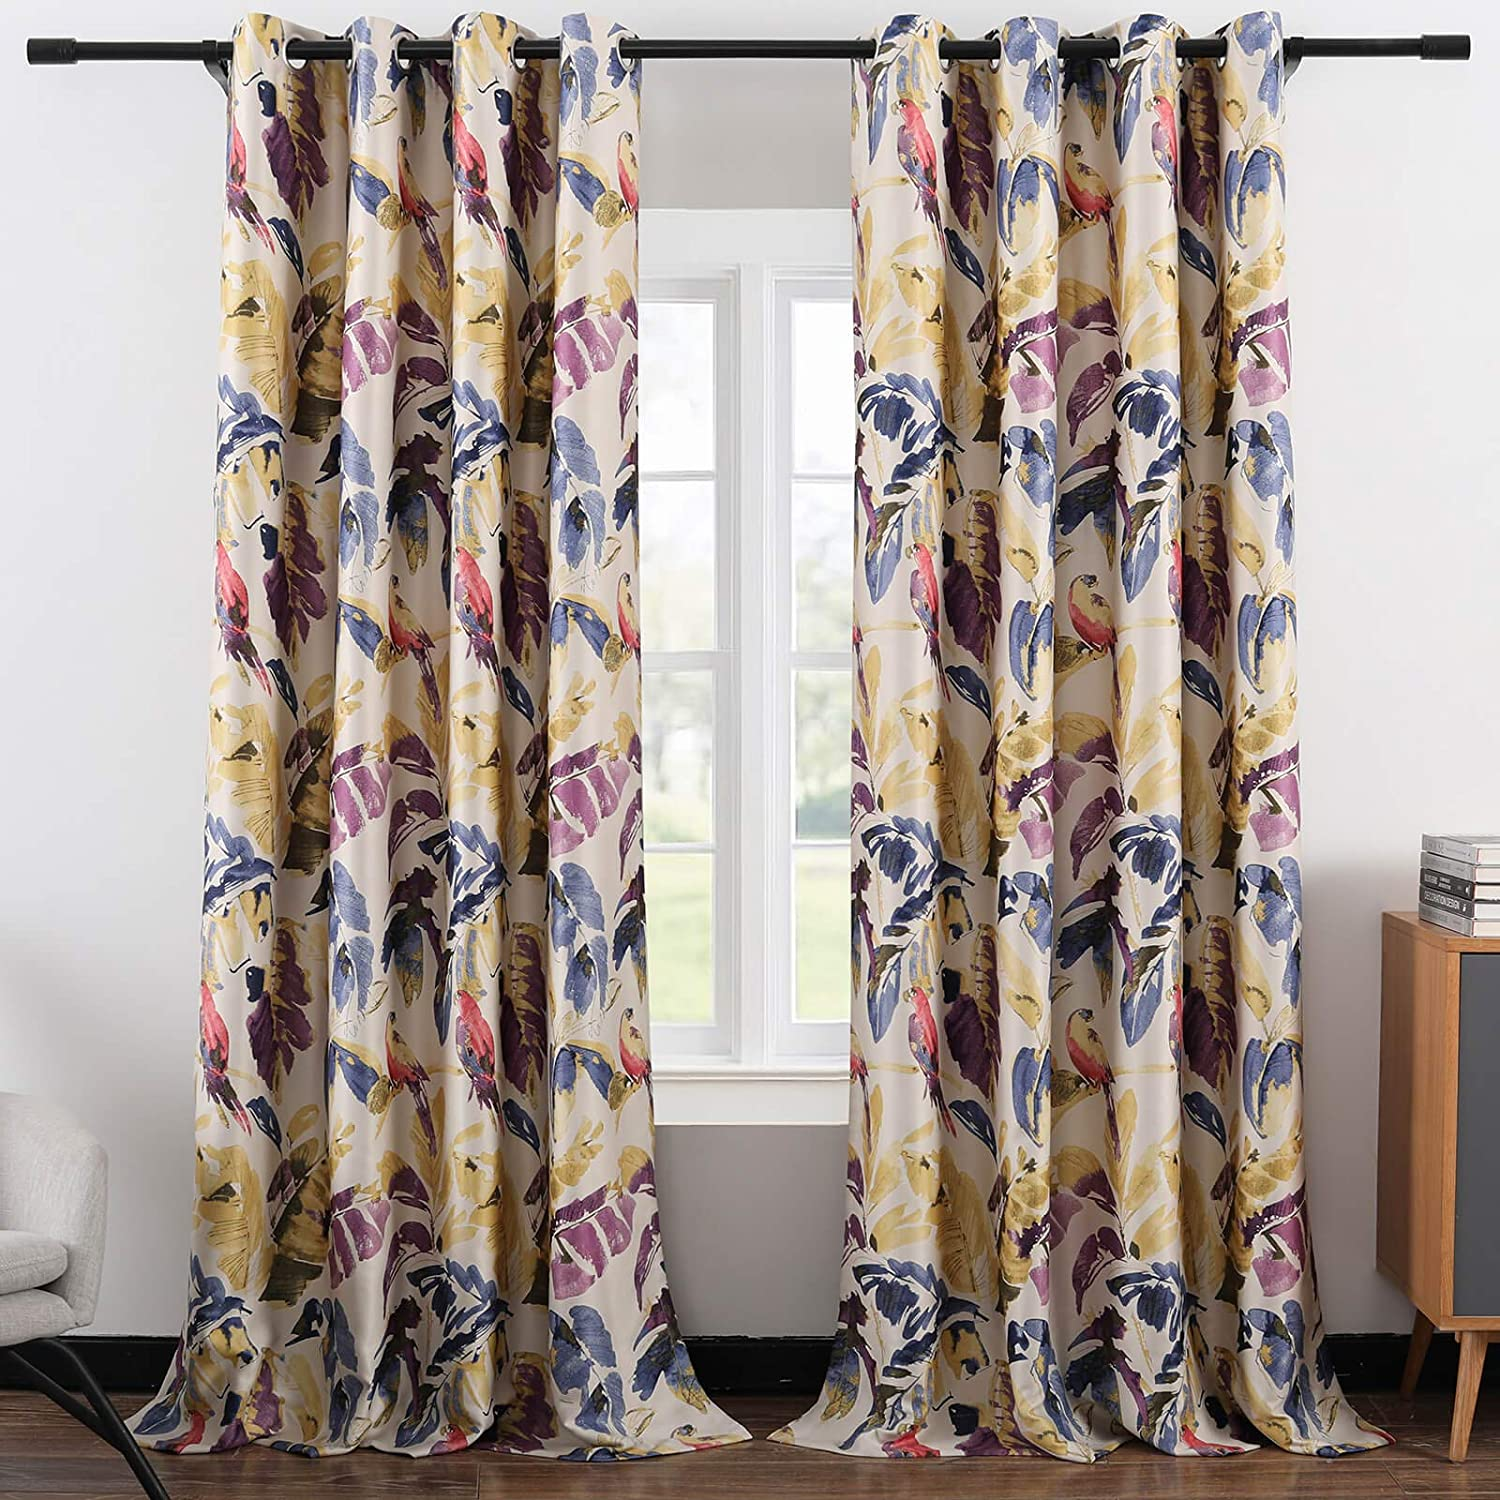 Leeva Blackout Curtains for Sliding Door, Abstract Print Plant Pattern Grommet Full Room Darkening Linen Window Drapes for Studio Office, 2 Panels, Purple and Yellow, 52x84